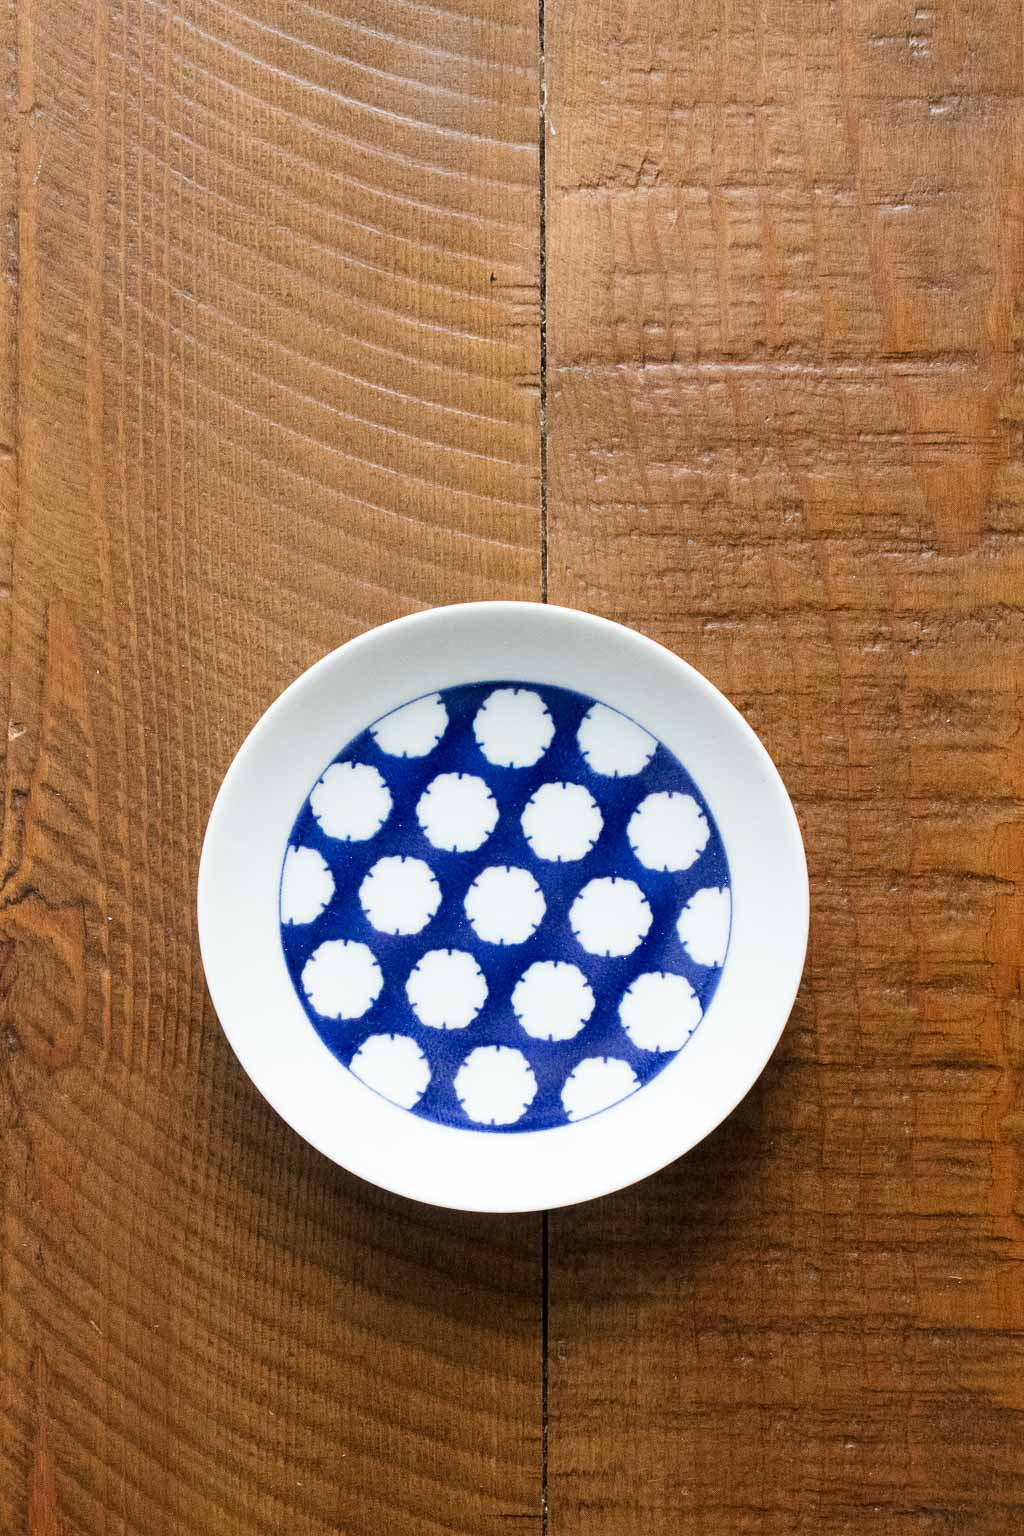 Komon Small Plate -Snow